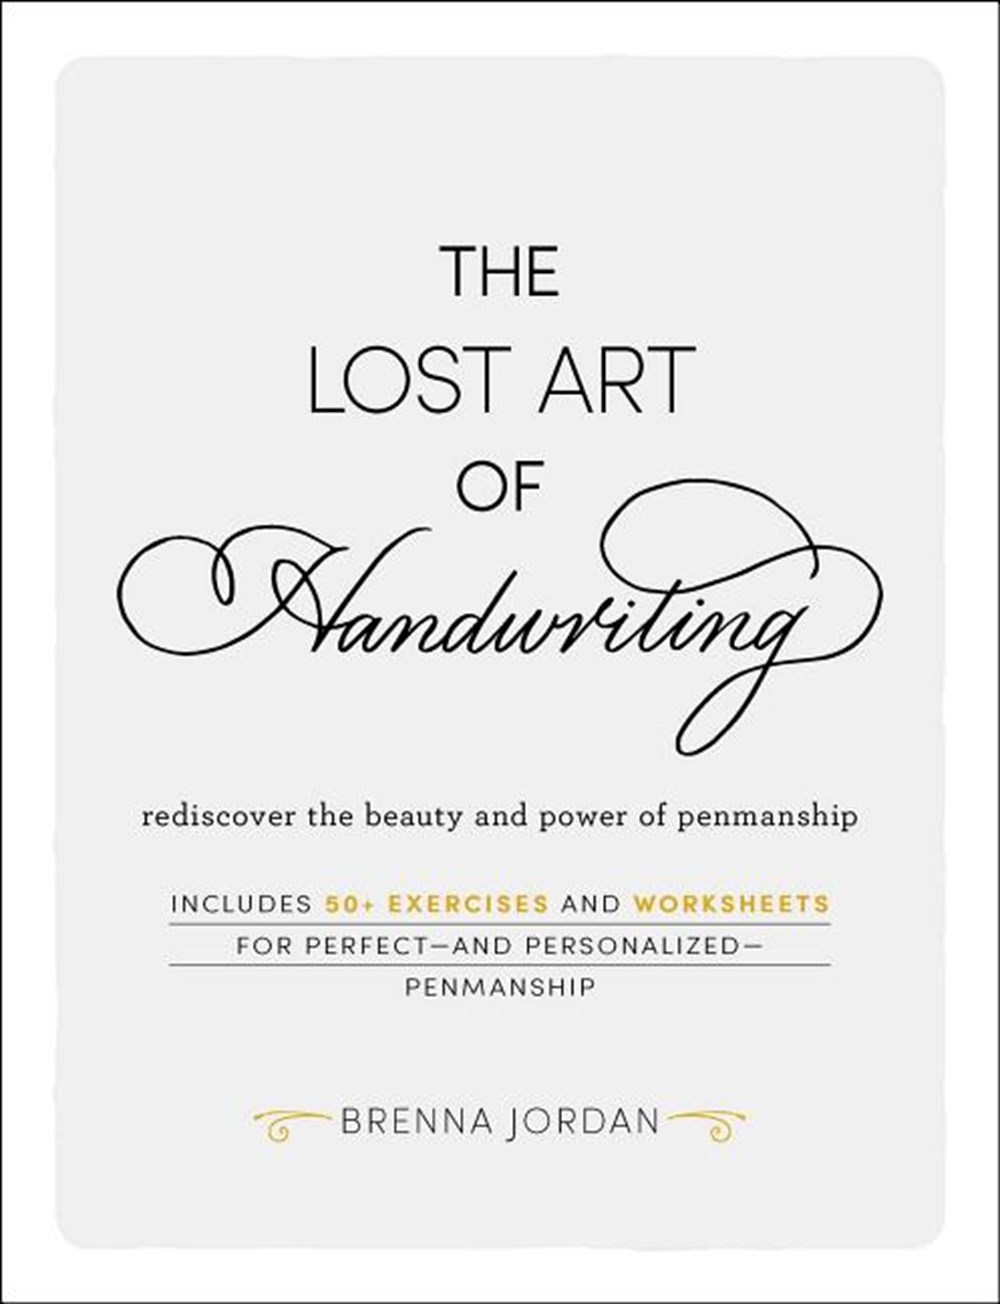 Lost Art of Handwriting Rediscover the Beauty and Power of Penmanship